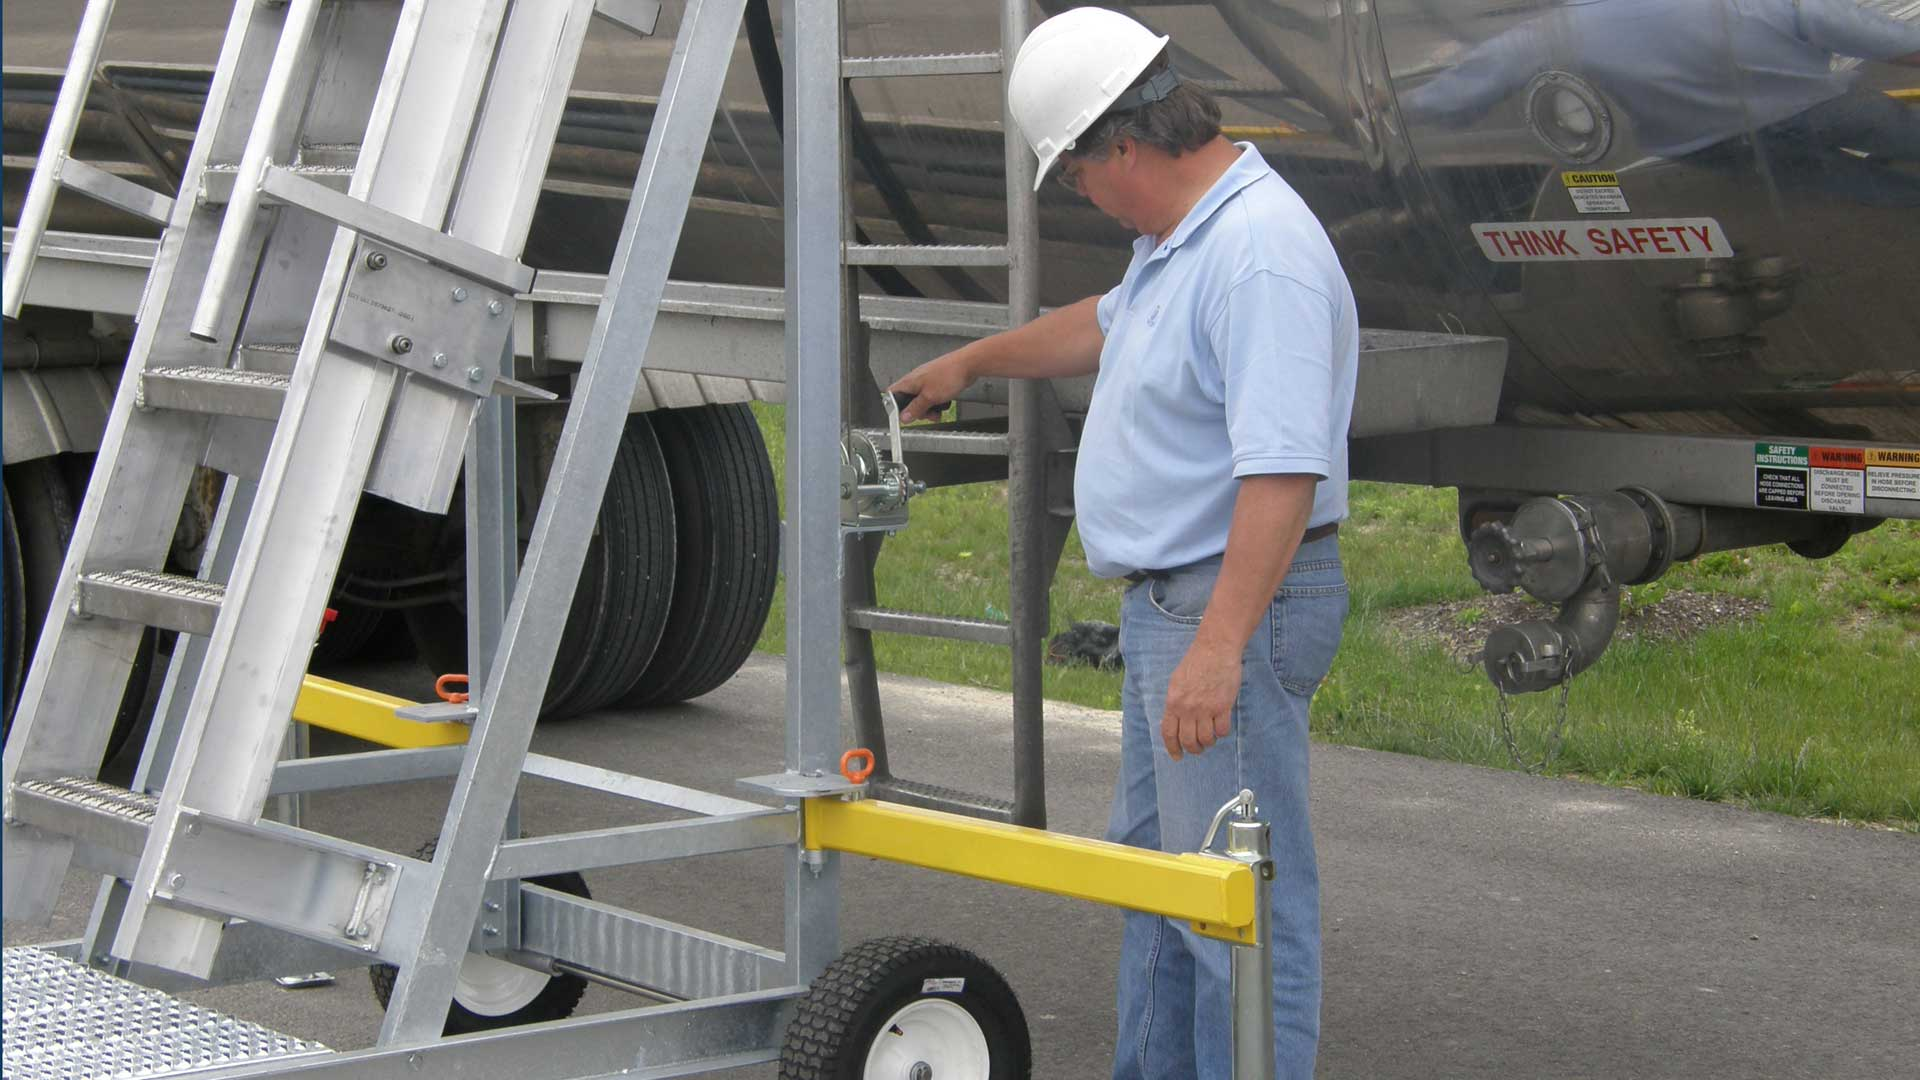 For trucks and most rail applications, our adjustable platform allows users to ascend vehicles of varying heights, from 10' to 14'.  We also offer platforms for Hopper and Bulk cars with an adjustable height of 12' to 16'.